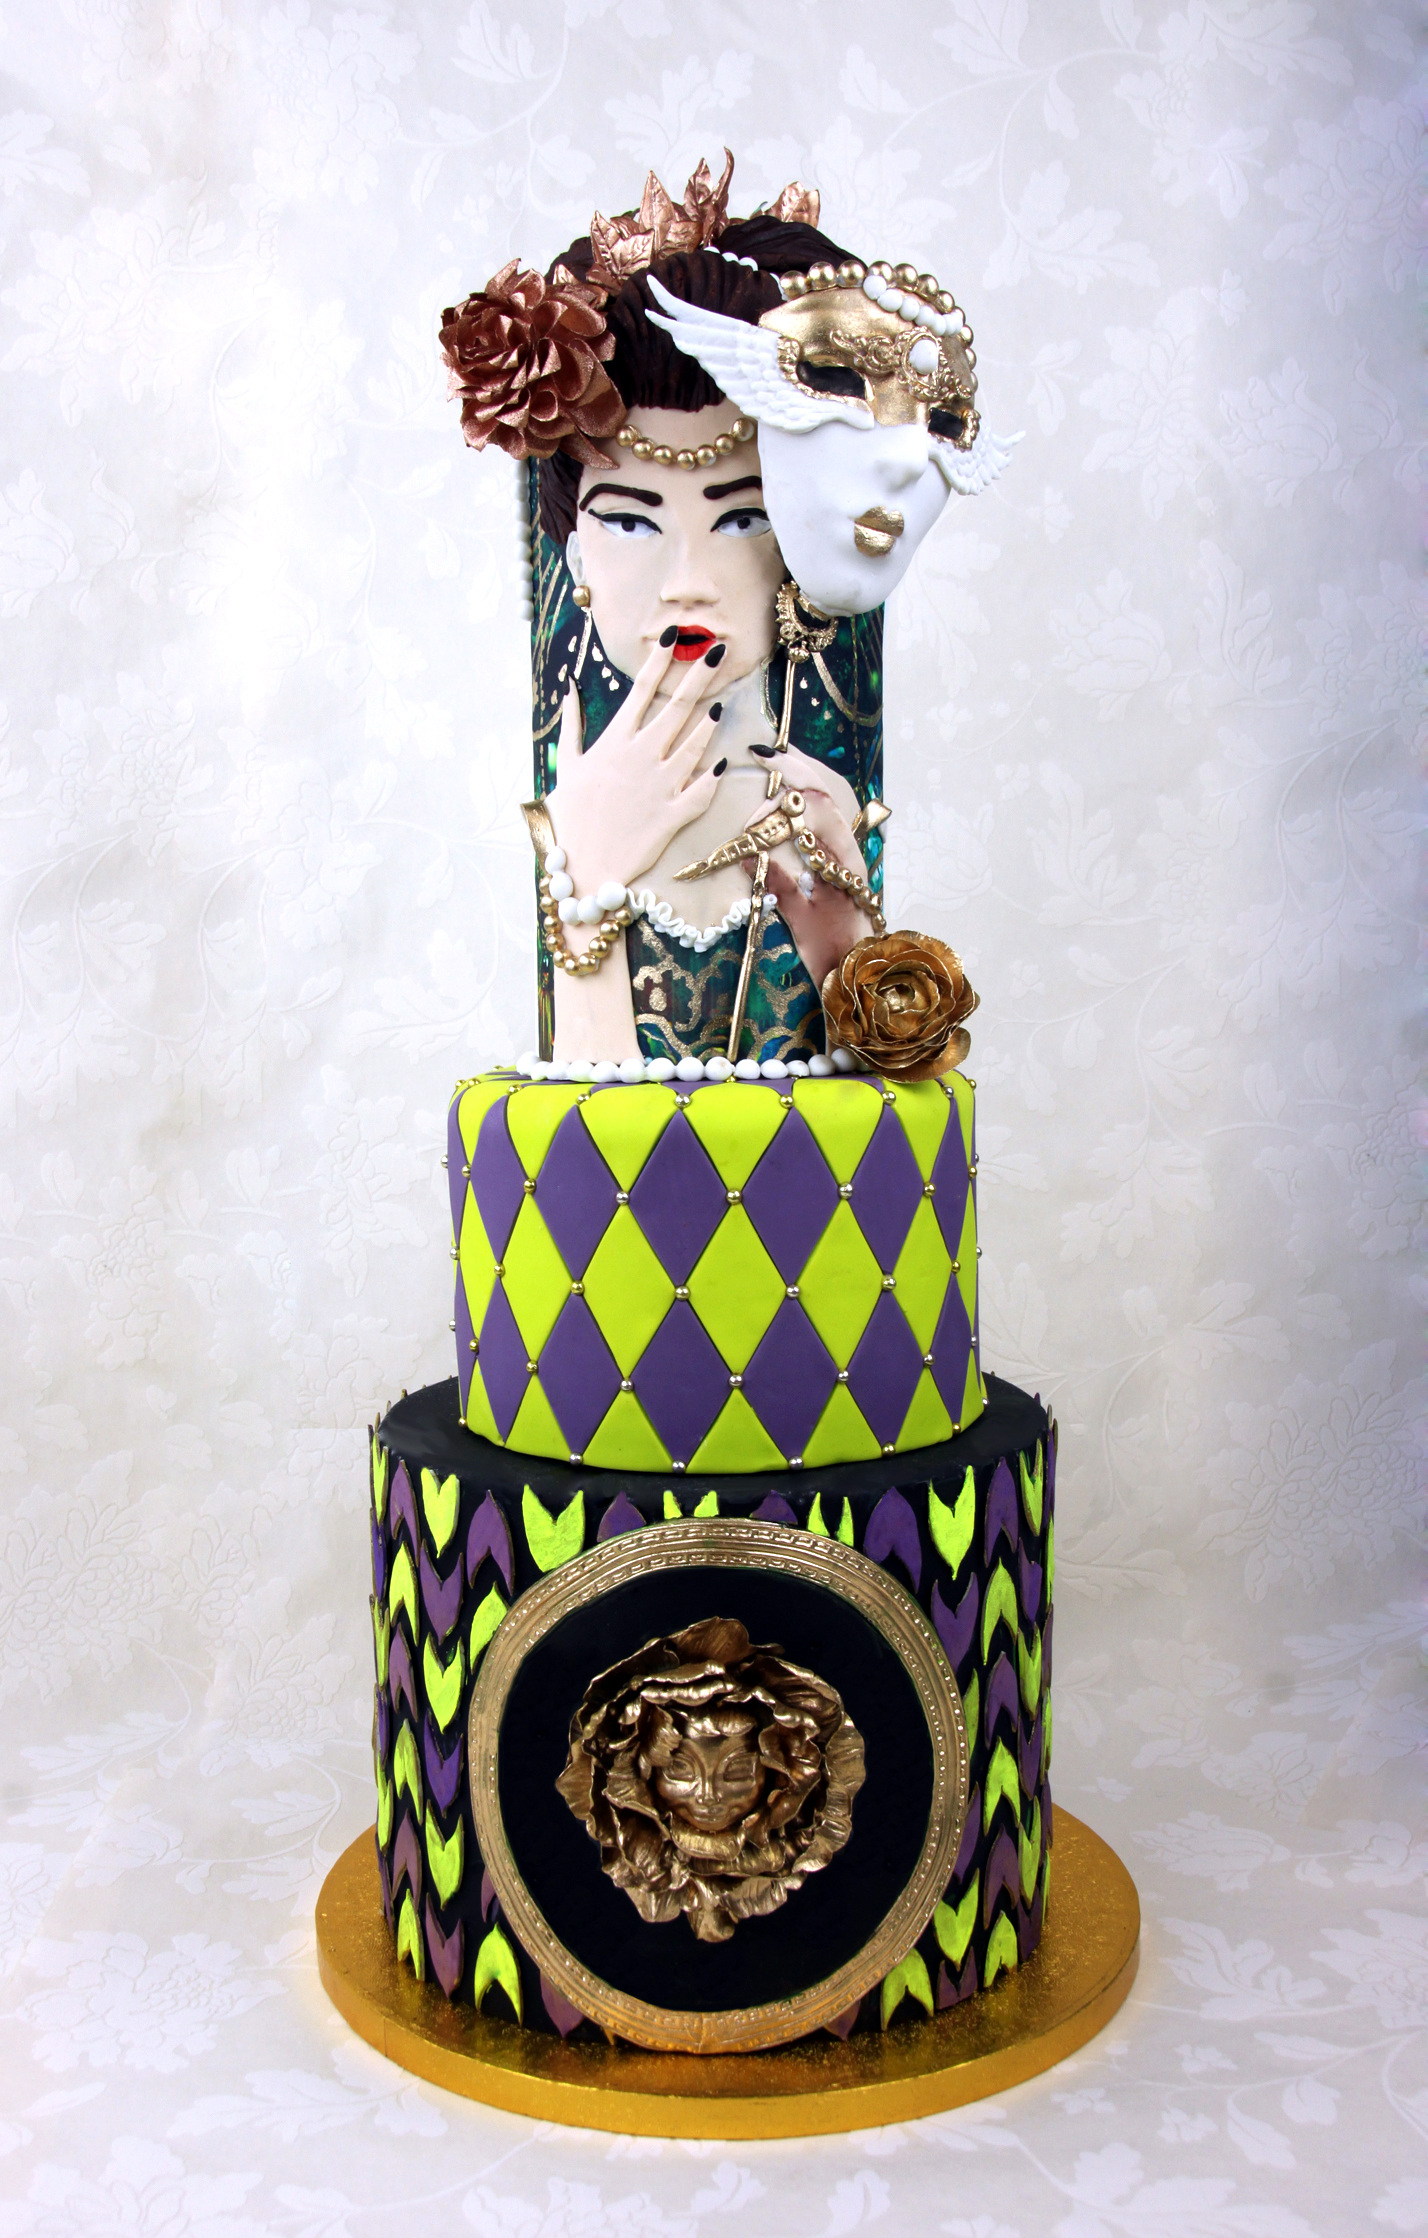 Mardi Gras themed hand painted cake